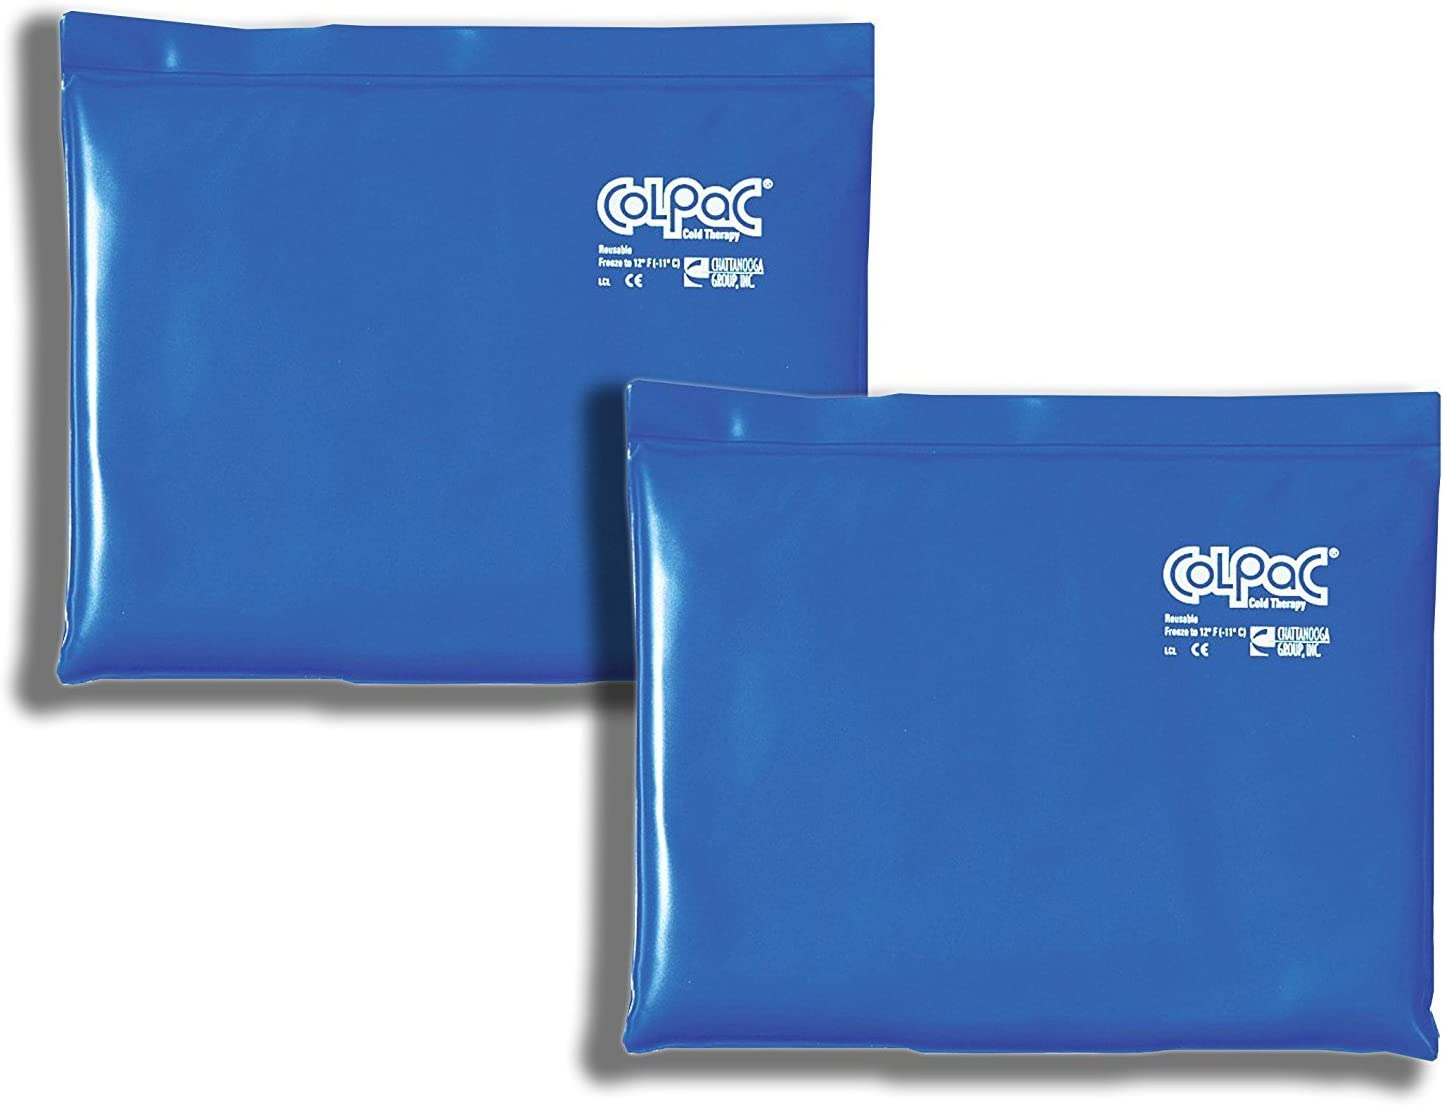 Chattanooga Cheap SALE Start Bargain sale ColPac Blue Vinyl Ice Standard 2 Pack - 11x1